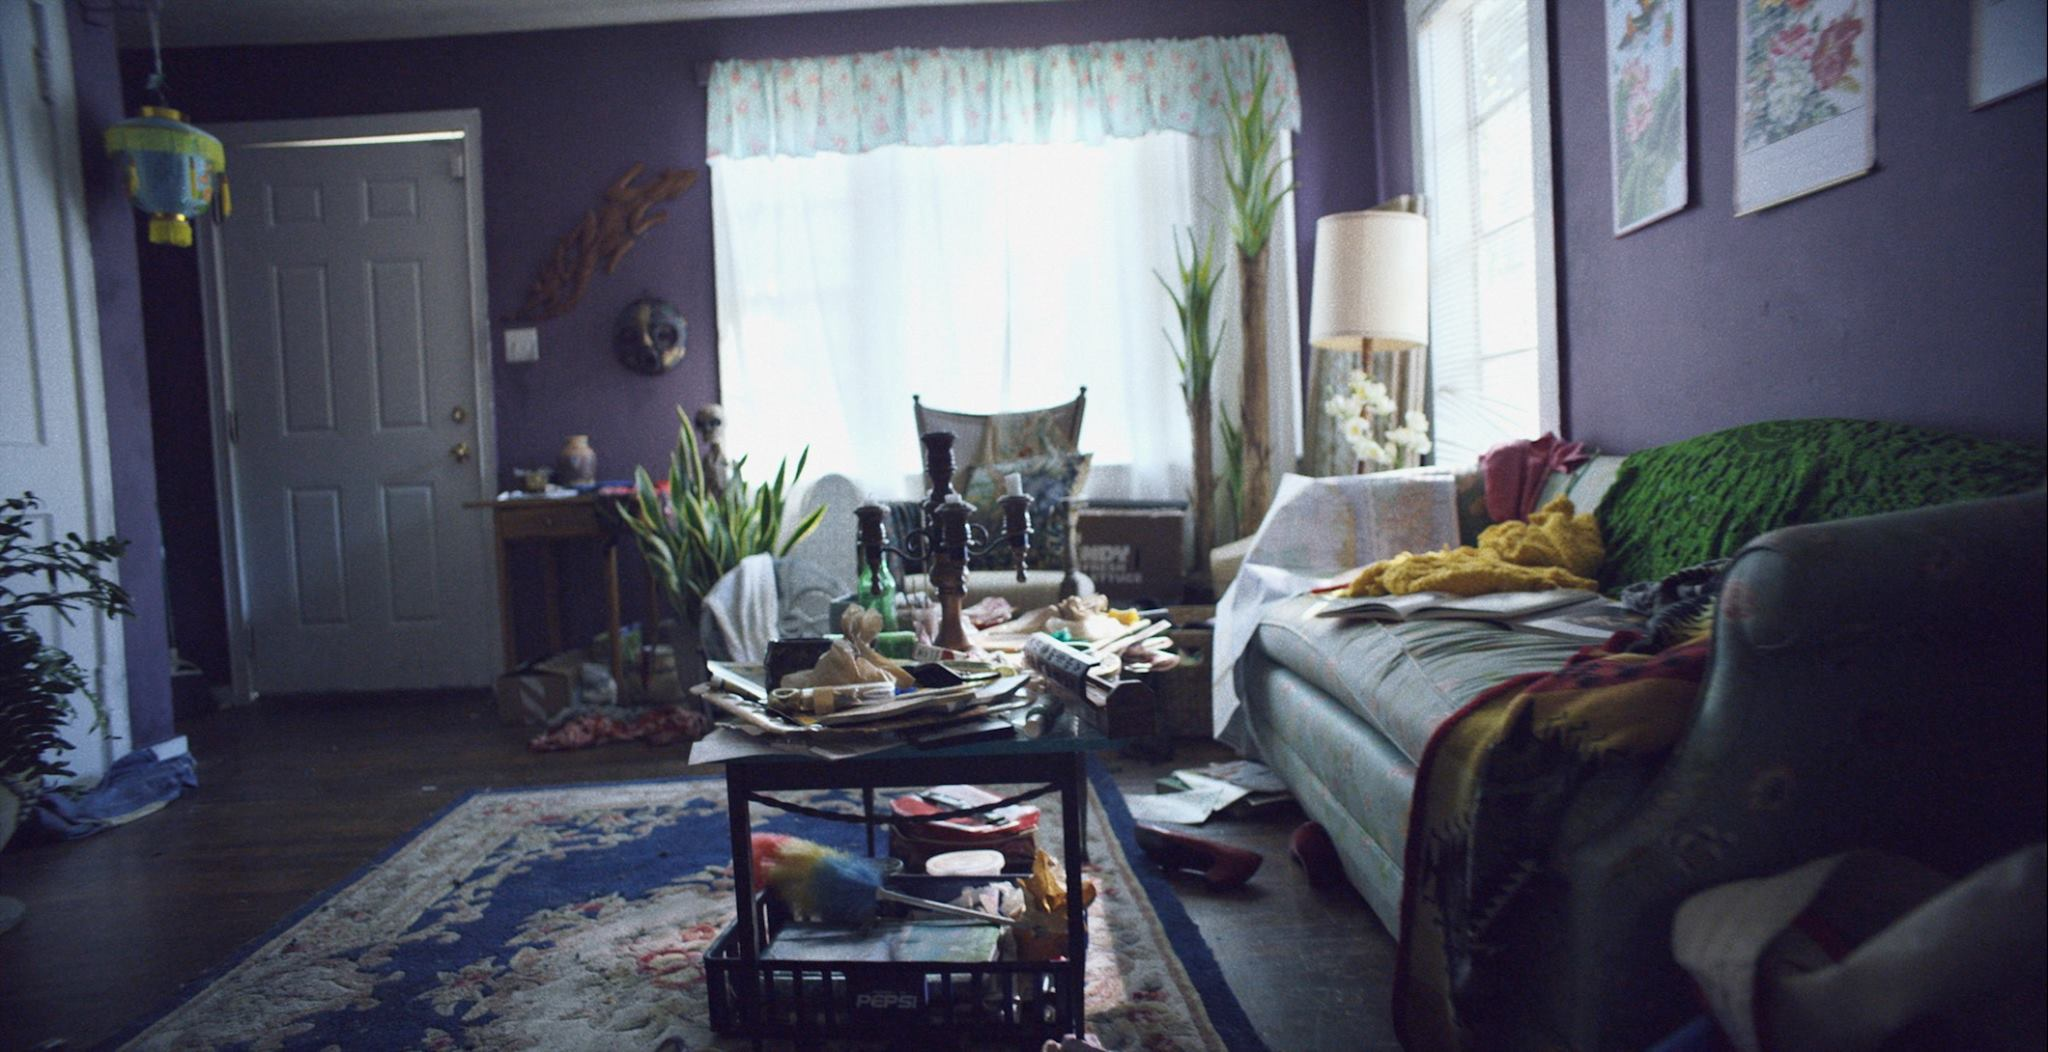 Magdalena's living room - Rosie, Oh